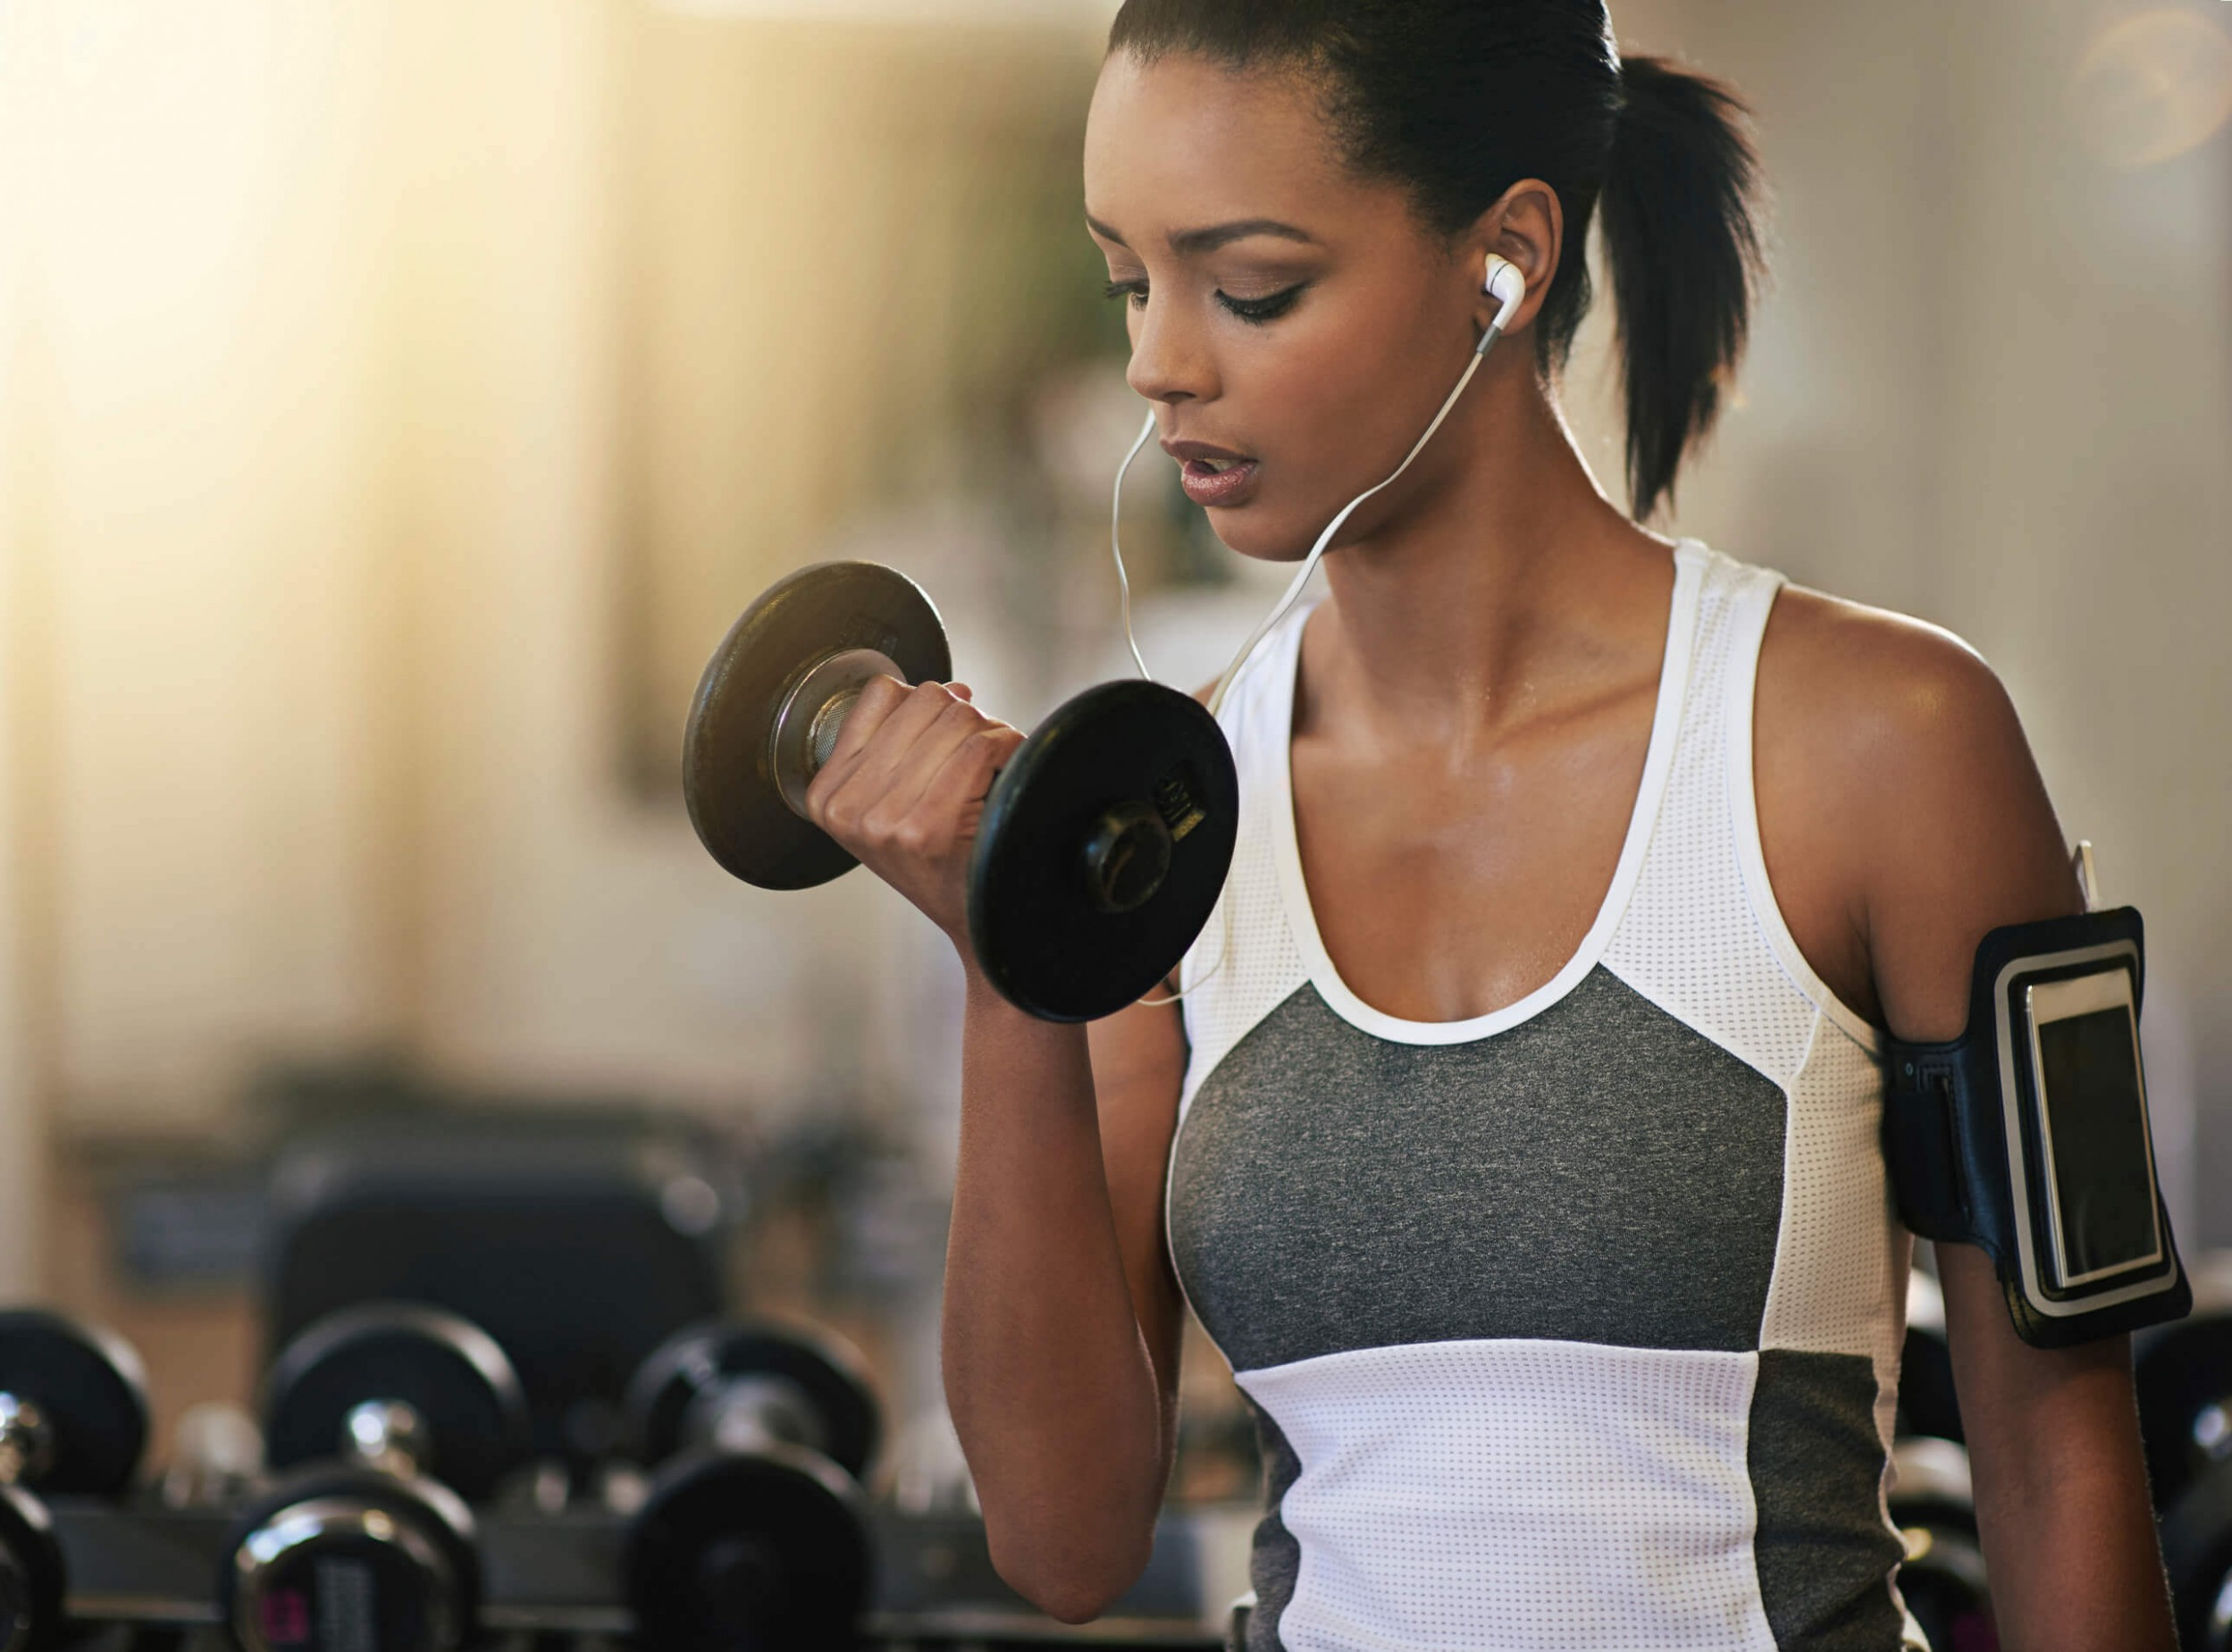 10 Sporty Hairstyles For Short Hair To Rock In The Gym Workout Hairstyles For Short Hair